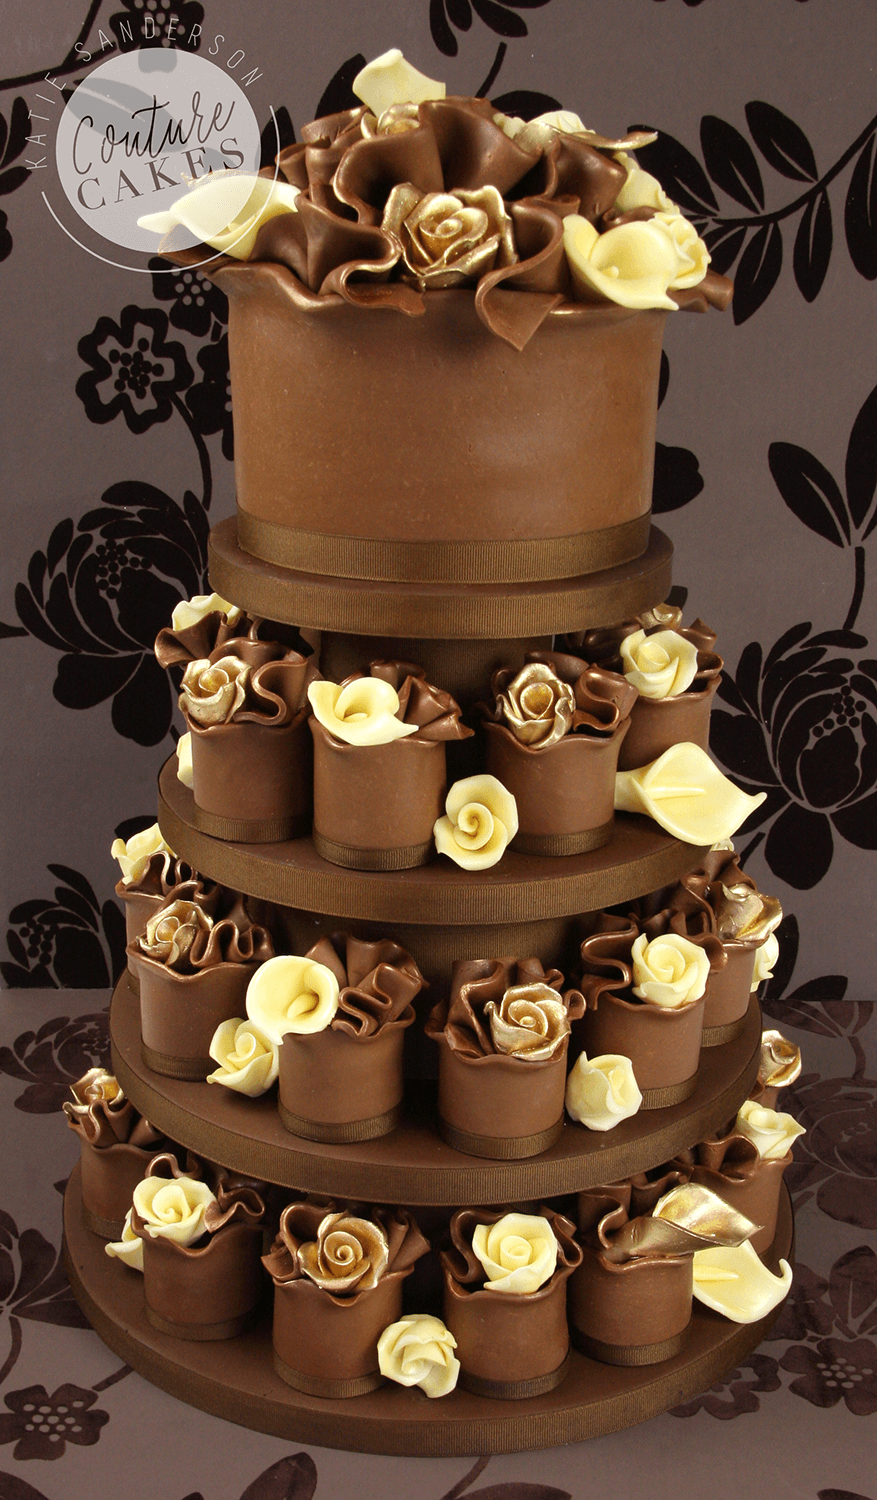 Serves 30 mini cakes & 20 portion top tier, Price as pictured £404